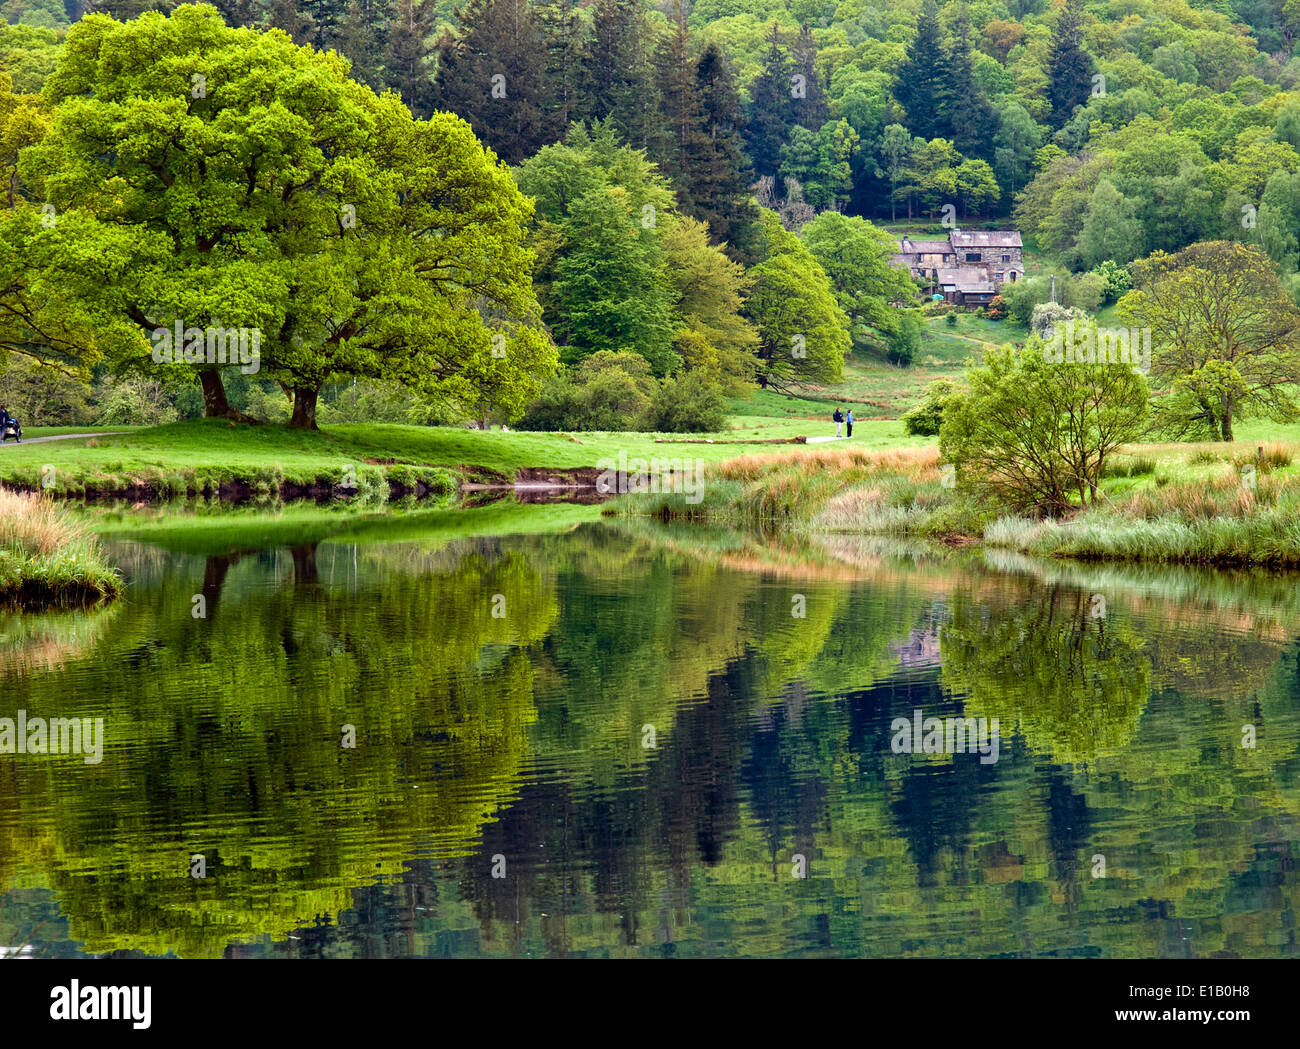 Elterwater and the River Brathay in the Lake District, Cumbria, UK - Stock Image